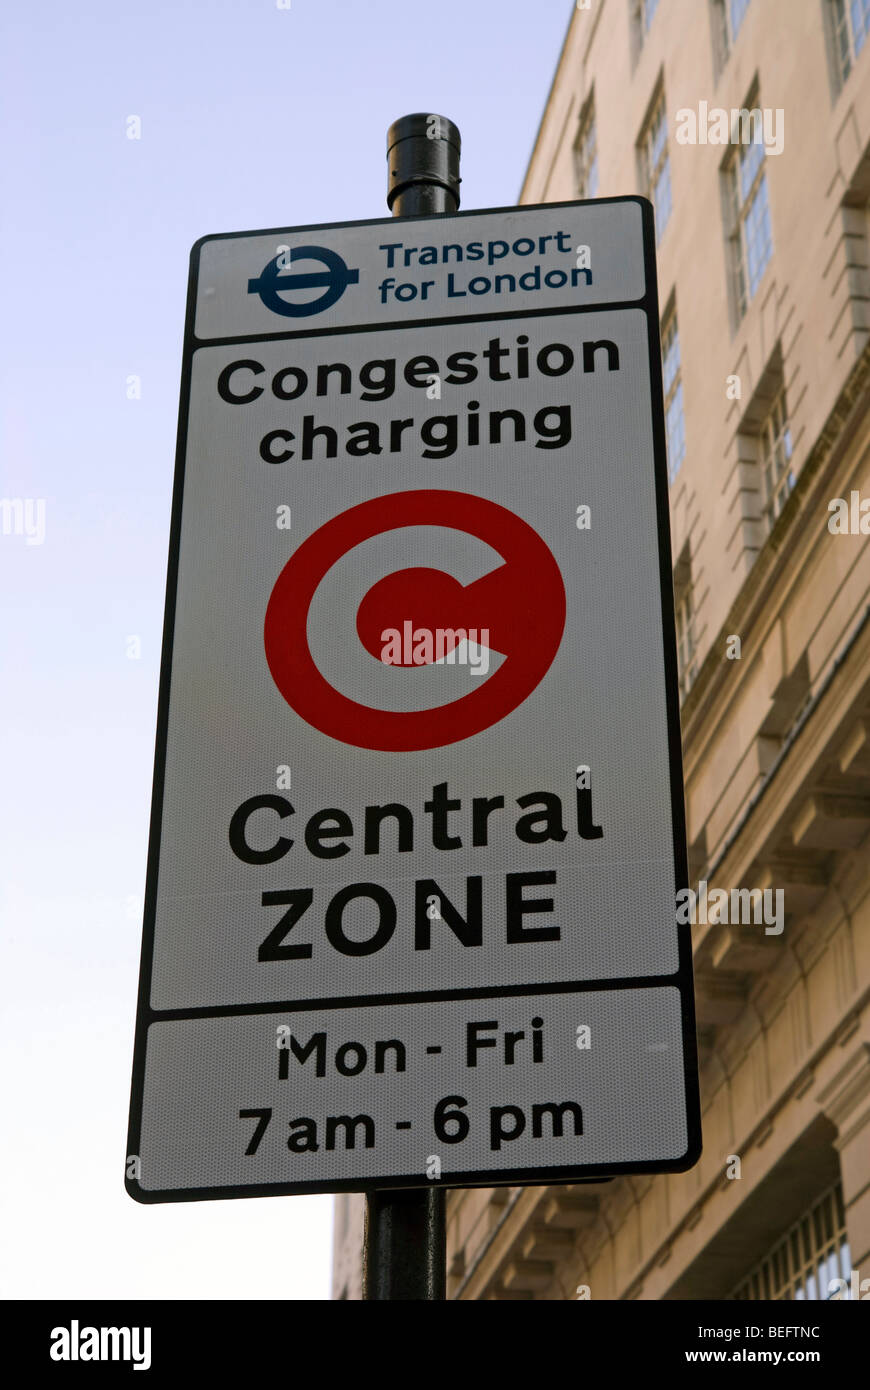 Congestion Charging sign in London - Stock Image